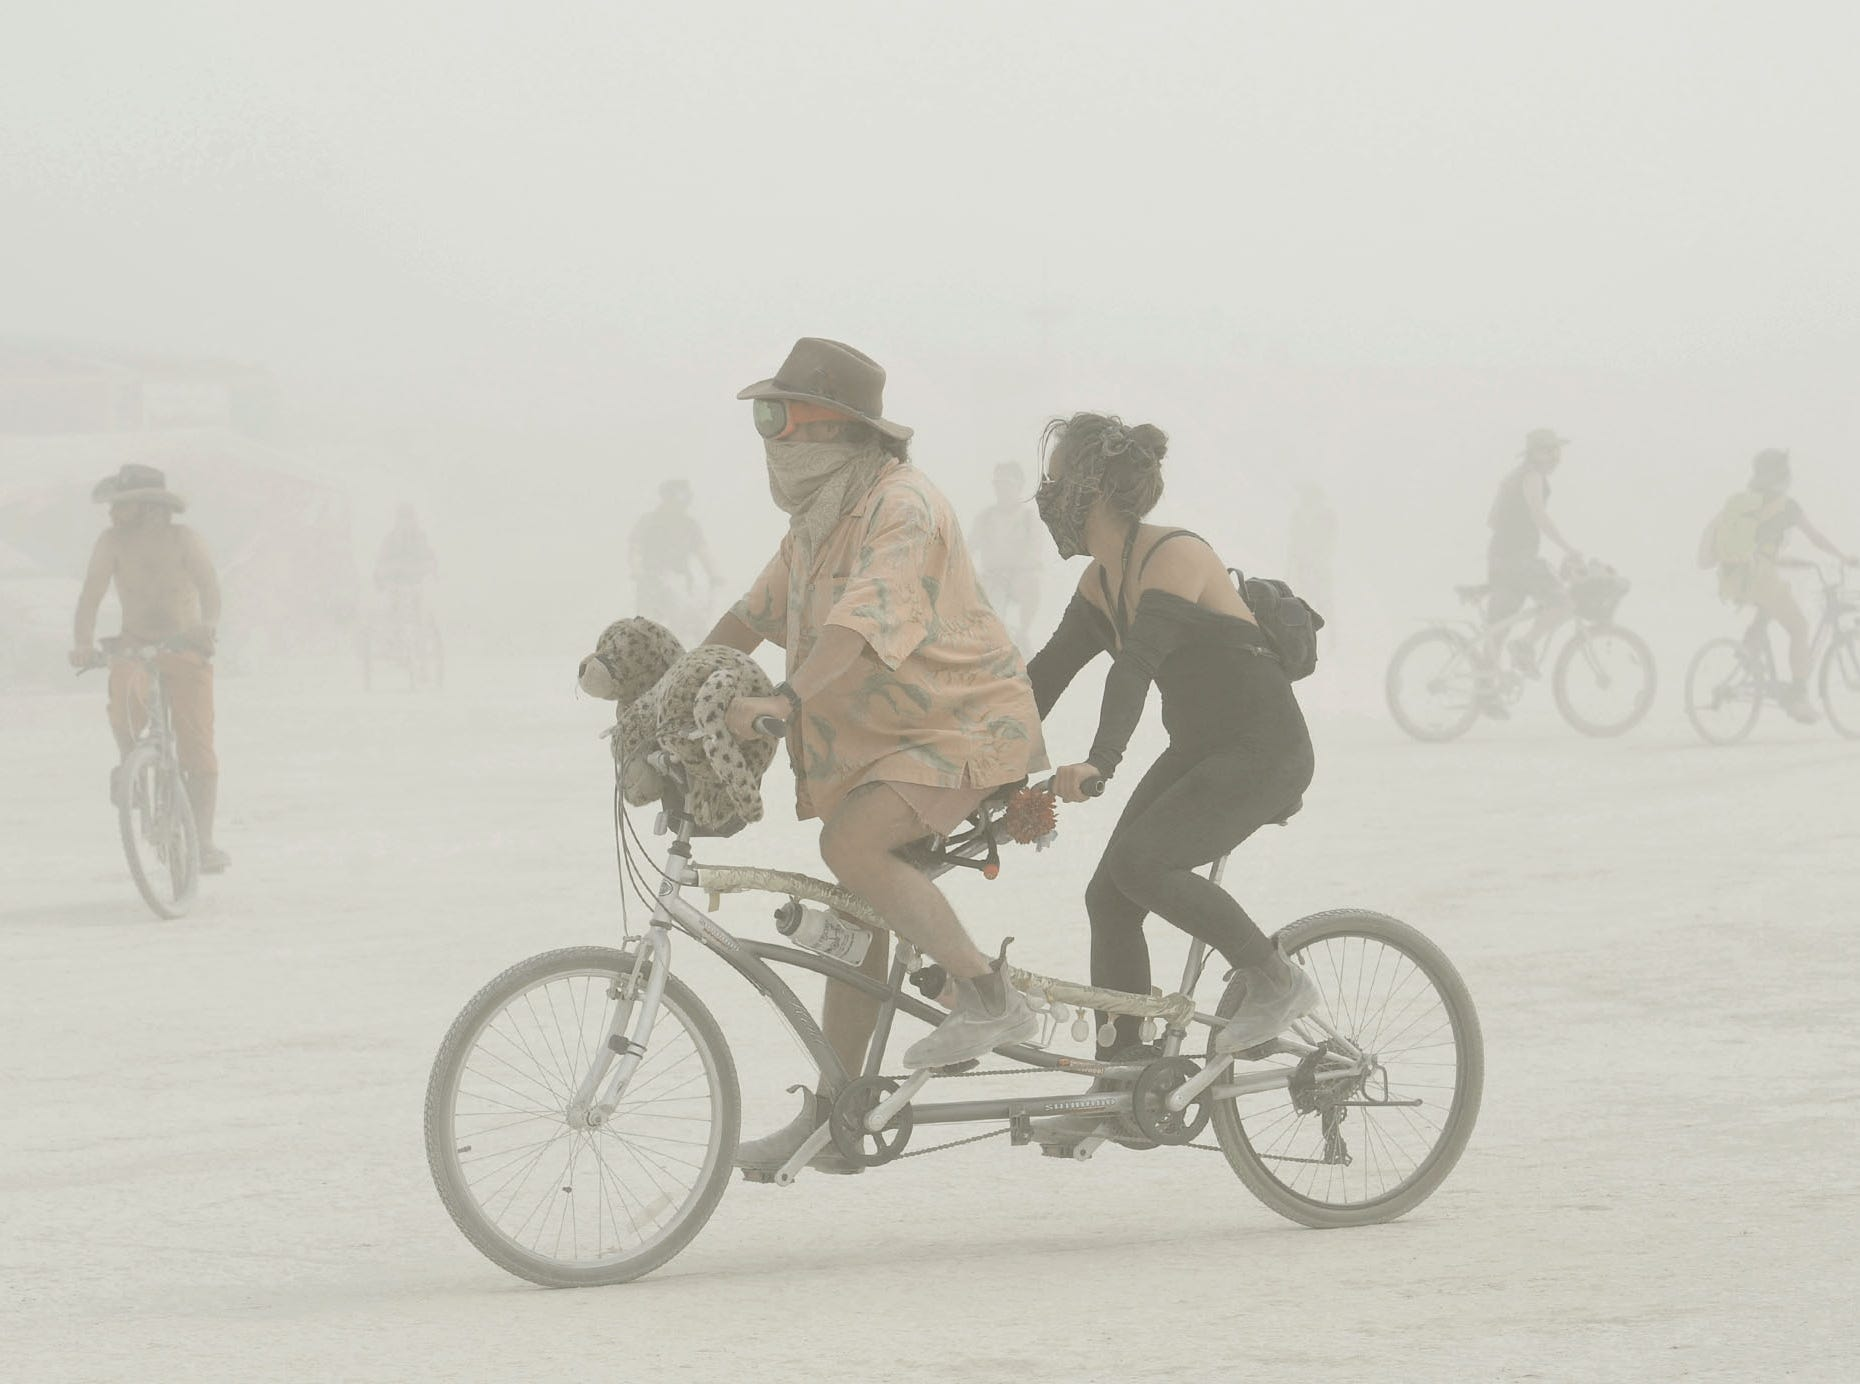 Sunday's dust storm didn't keep Burners from getting out on the playa at Burning Man on Sunday, Aug. 26, 2018. The storm lasted all day, causing the gates into the event to close while the storm lasted.